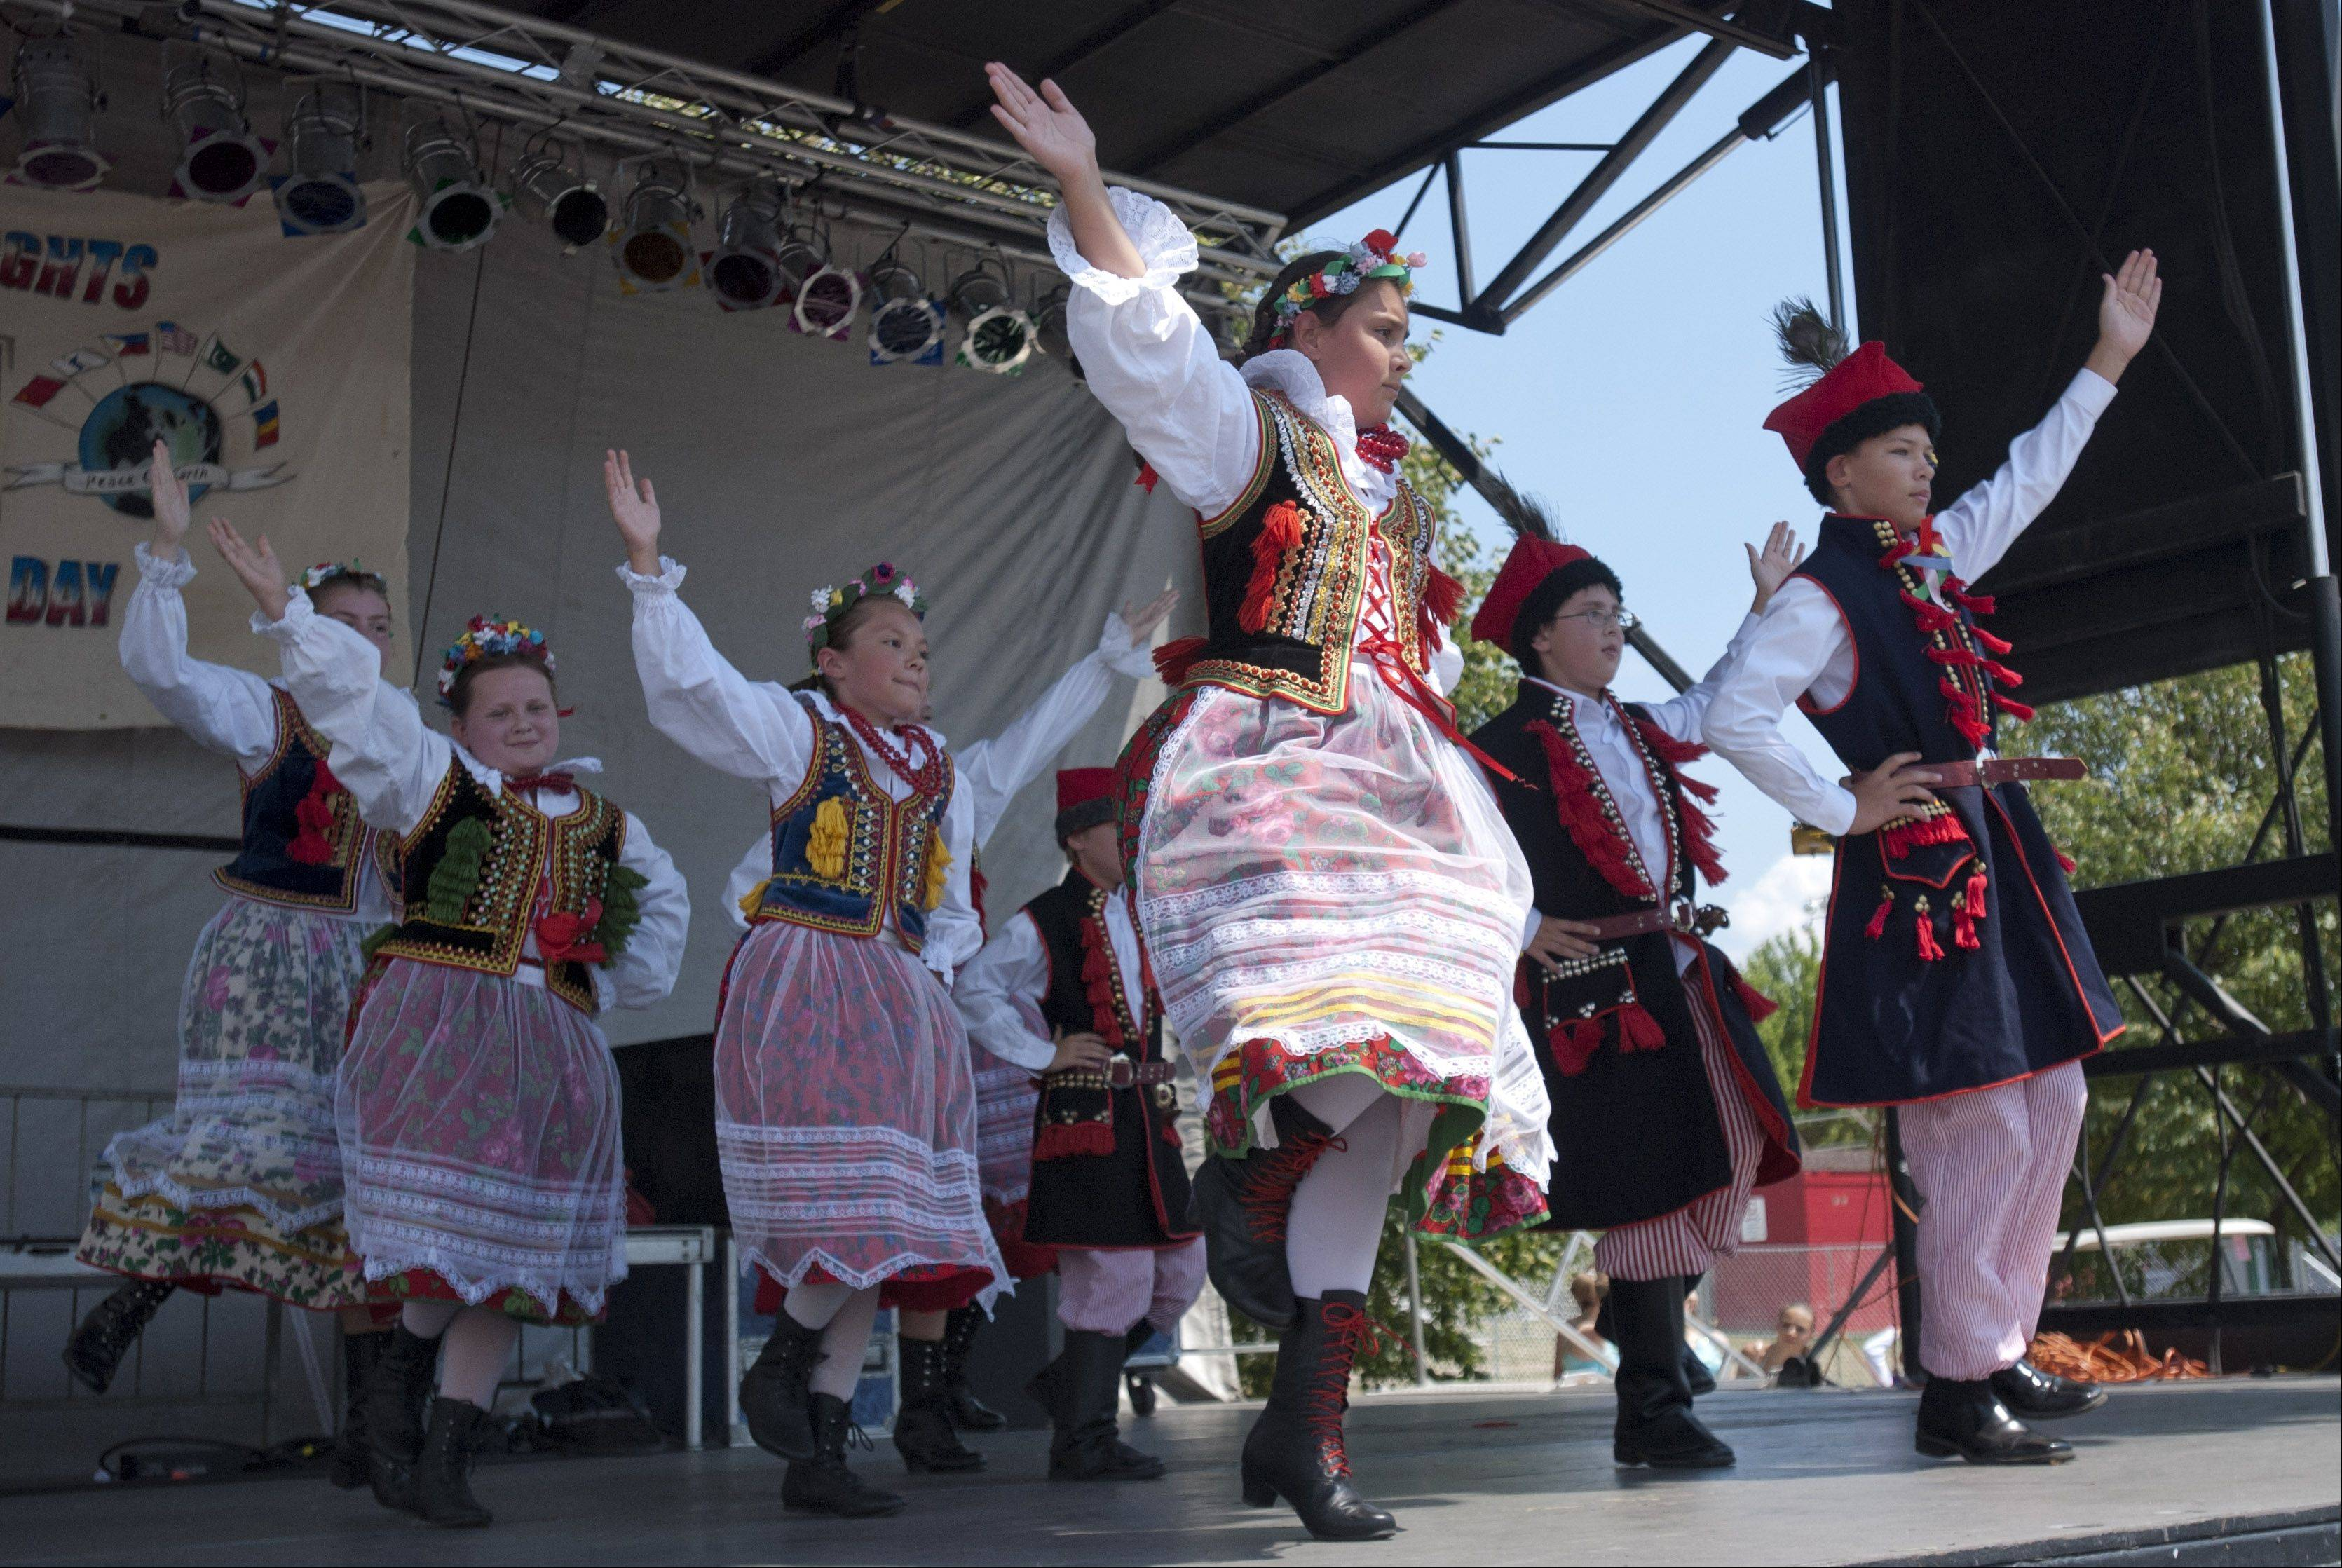 International Day, once again part of Glendale Heights Fest, invites residents to share their ethnic culture and traditions through food, costumes and performances.